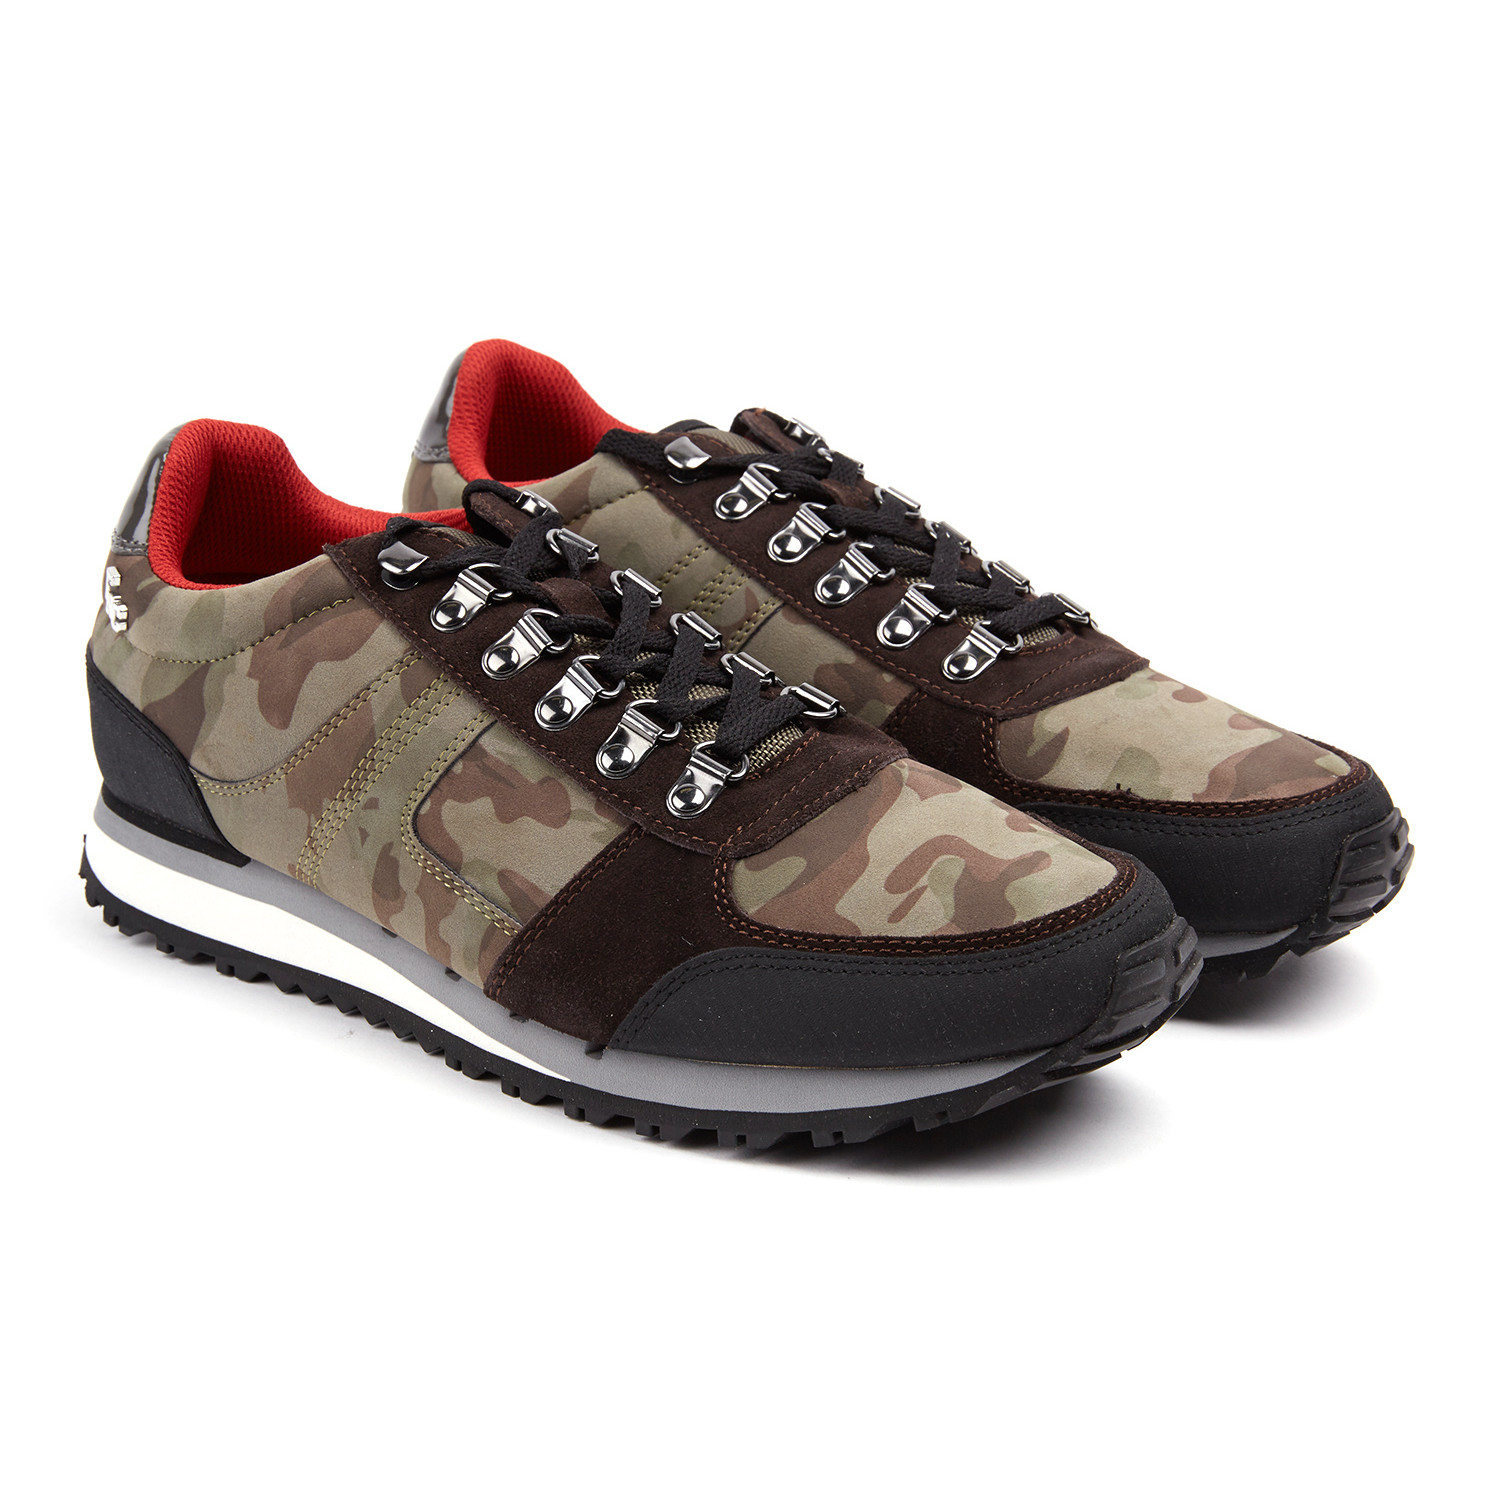 Panini sneaker olive brown euro 40 fish 39 n for Fish and chips shoes